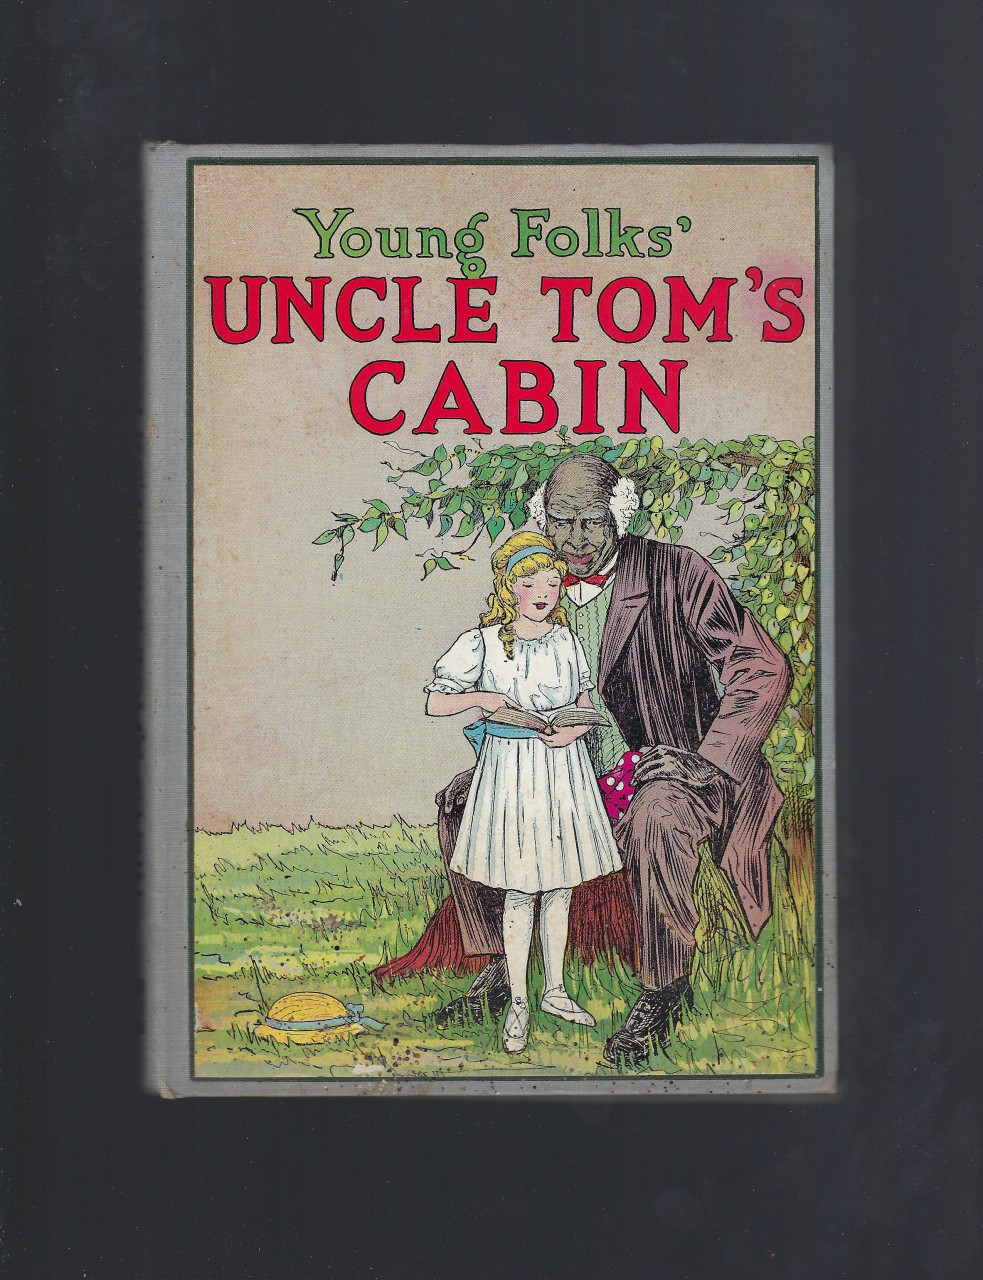 Young Folk's Uncle Tom's Cabin Adapted for Children with Original illustrations by Ike Morgan 1952, Boylan, Grace Duffie (Stowe, Harriet Beecher); Ike Morgan [Illustrator]